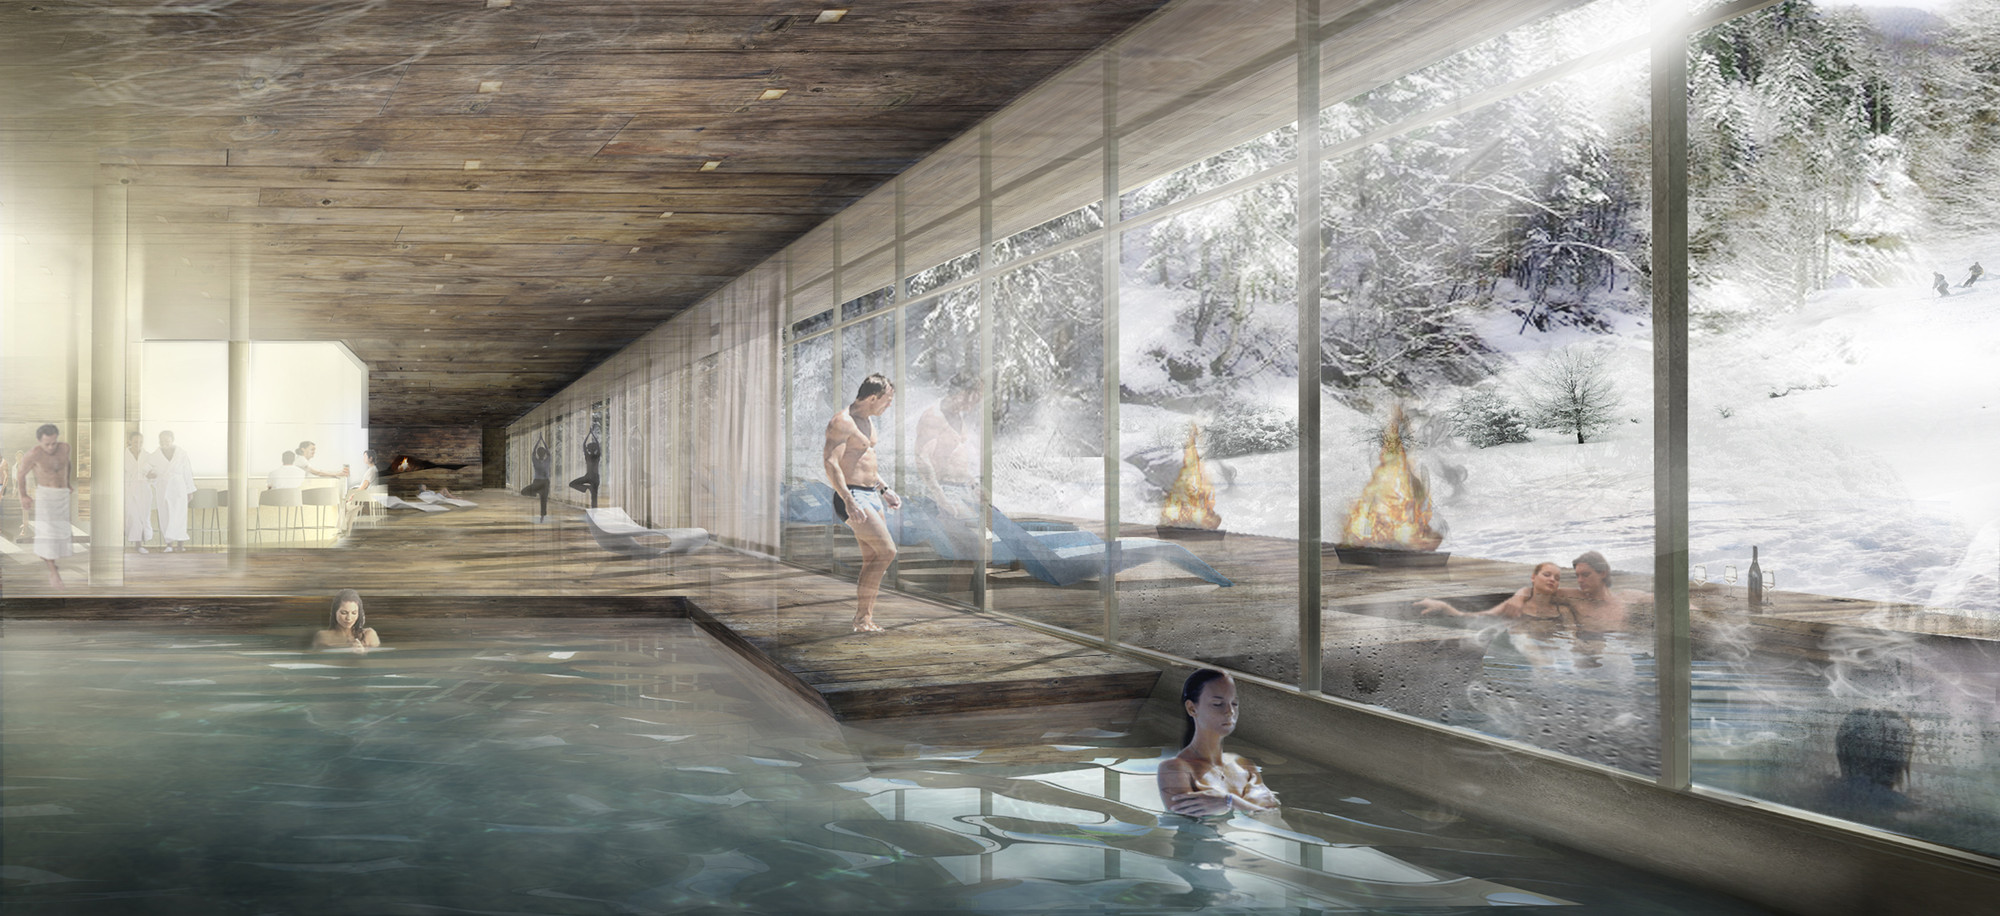 Graft wins competition to design resort in lofer archdaily for Hotel spa design